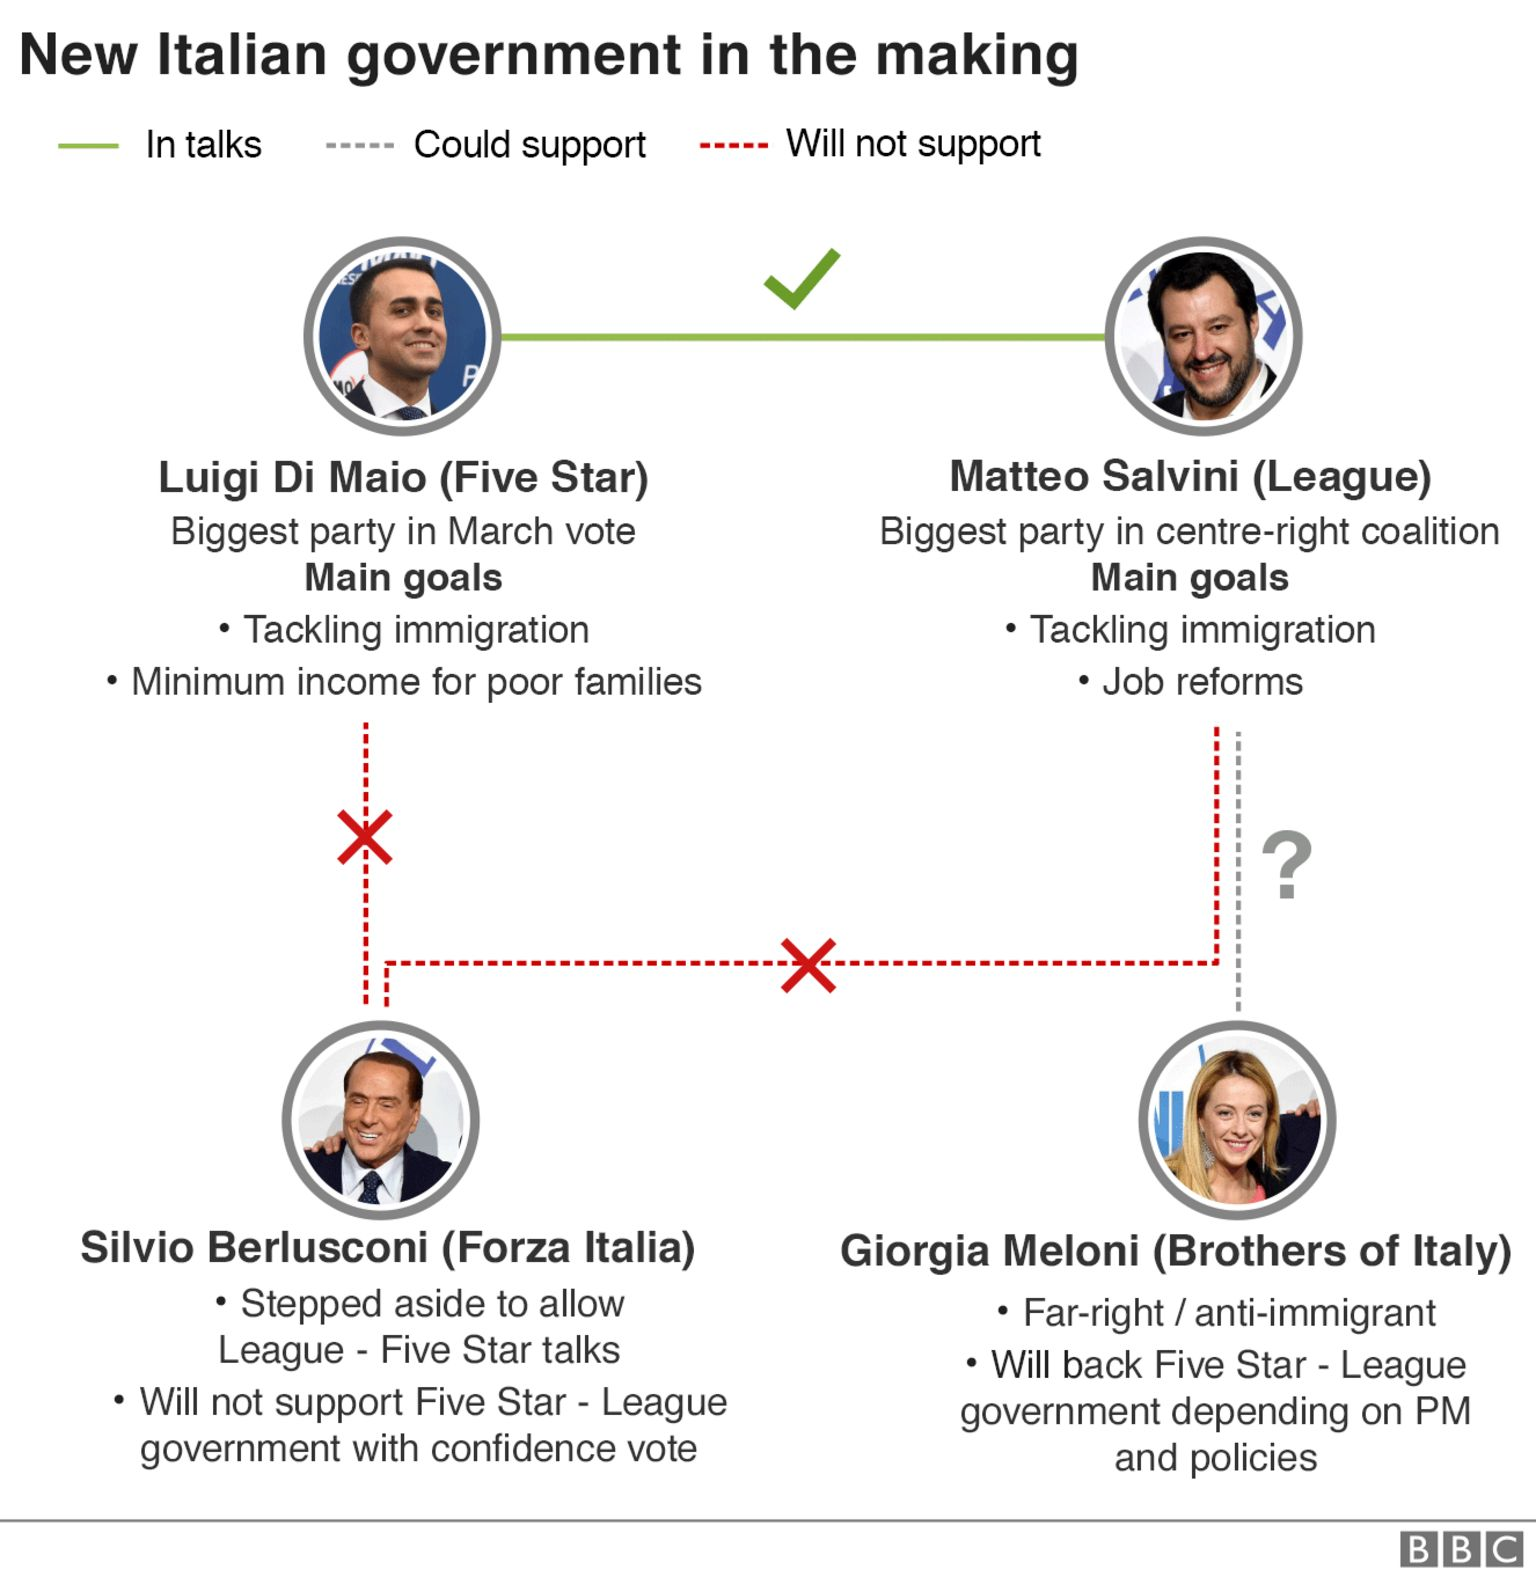 Graphic showing negotiations for a new government in Italy